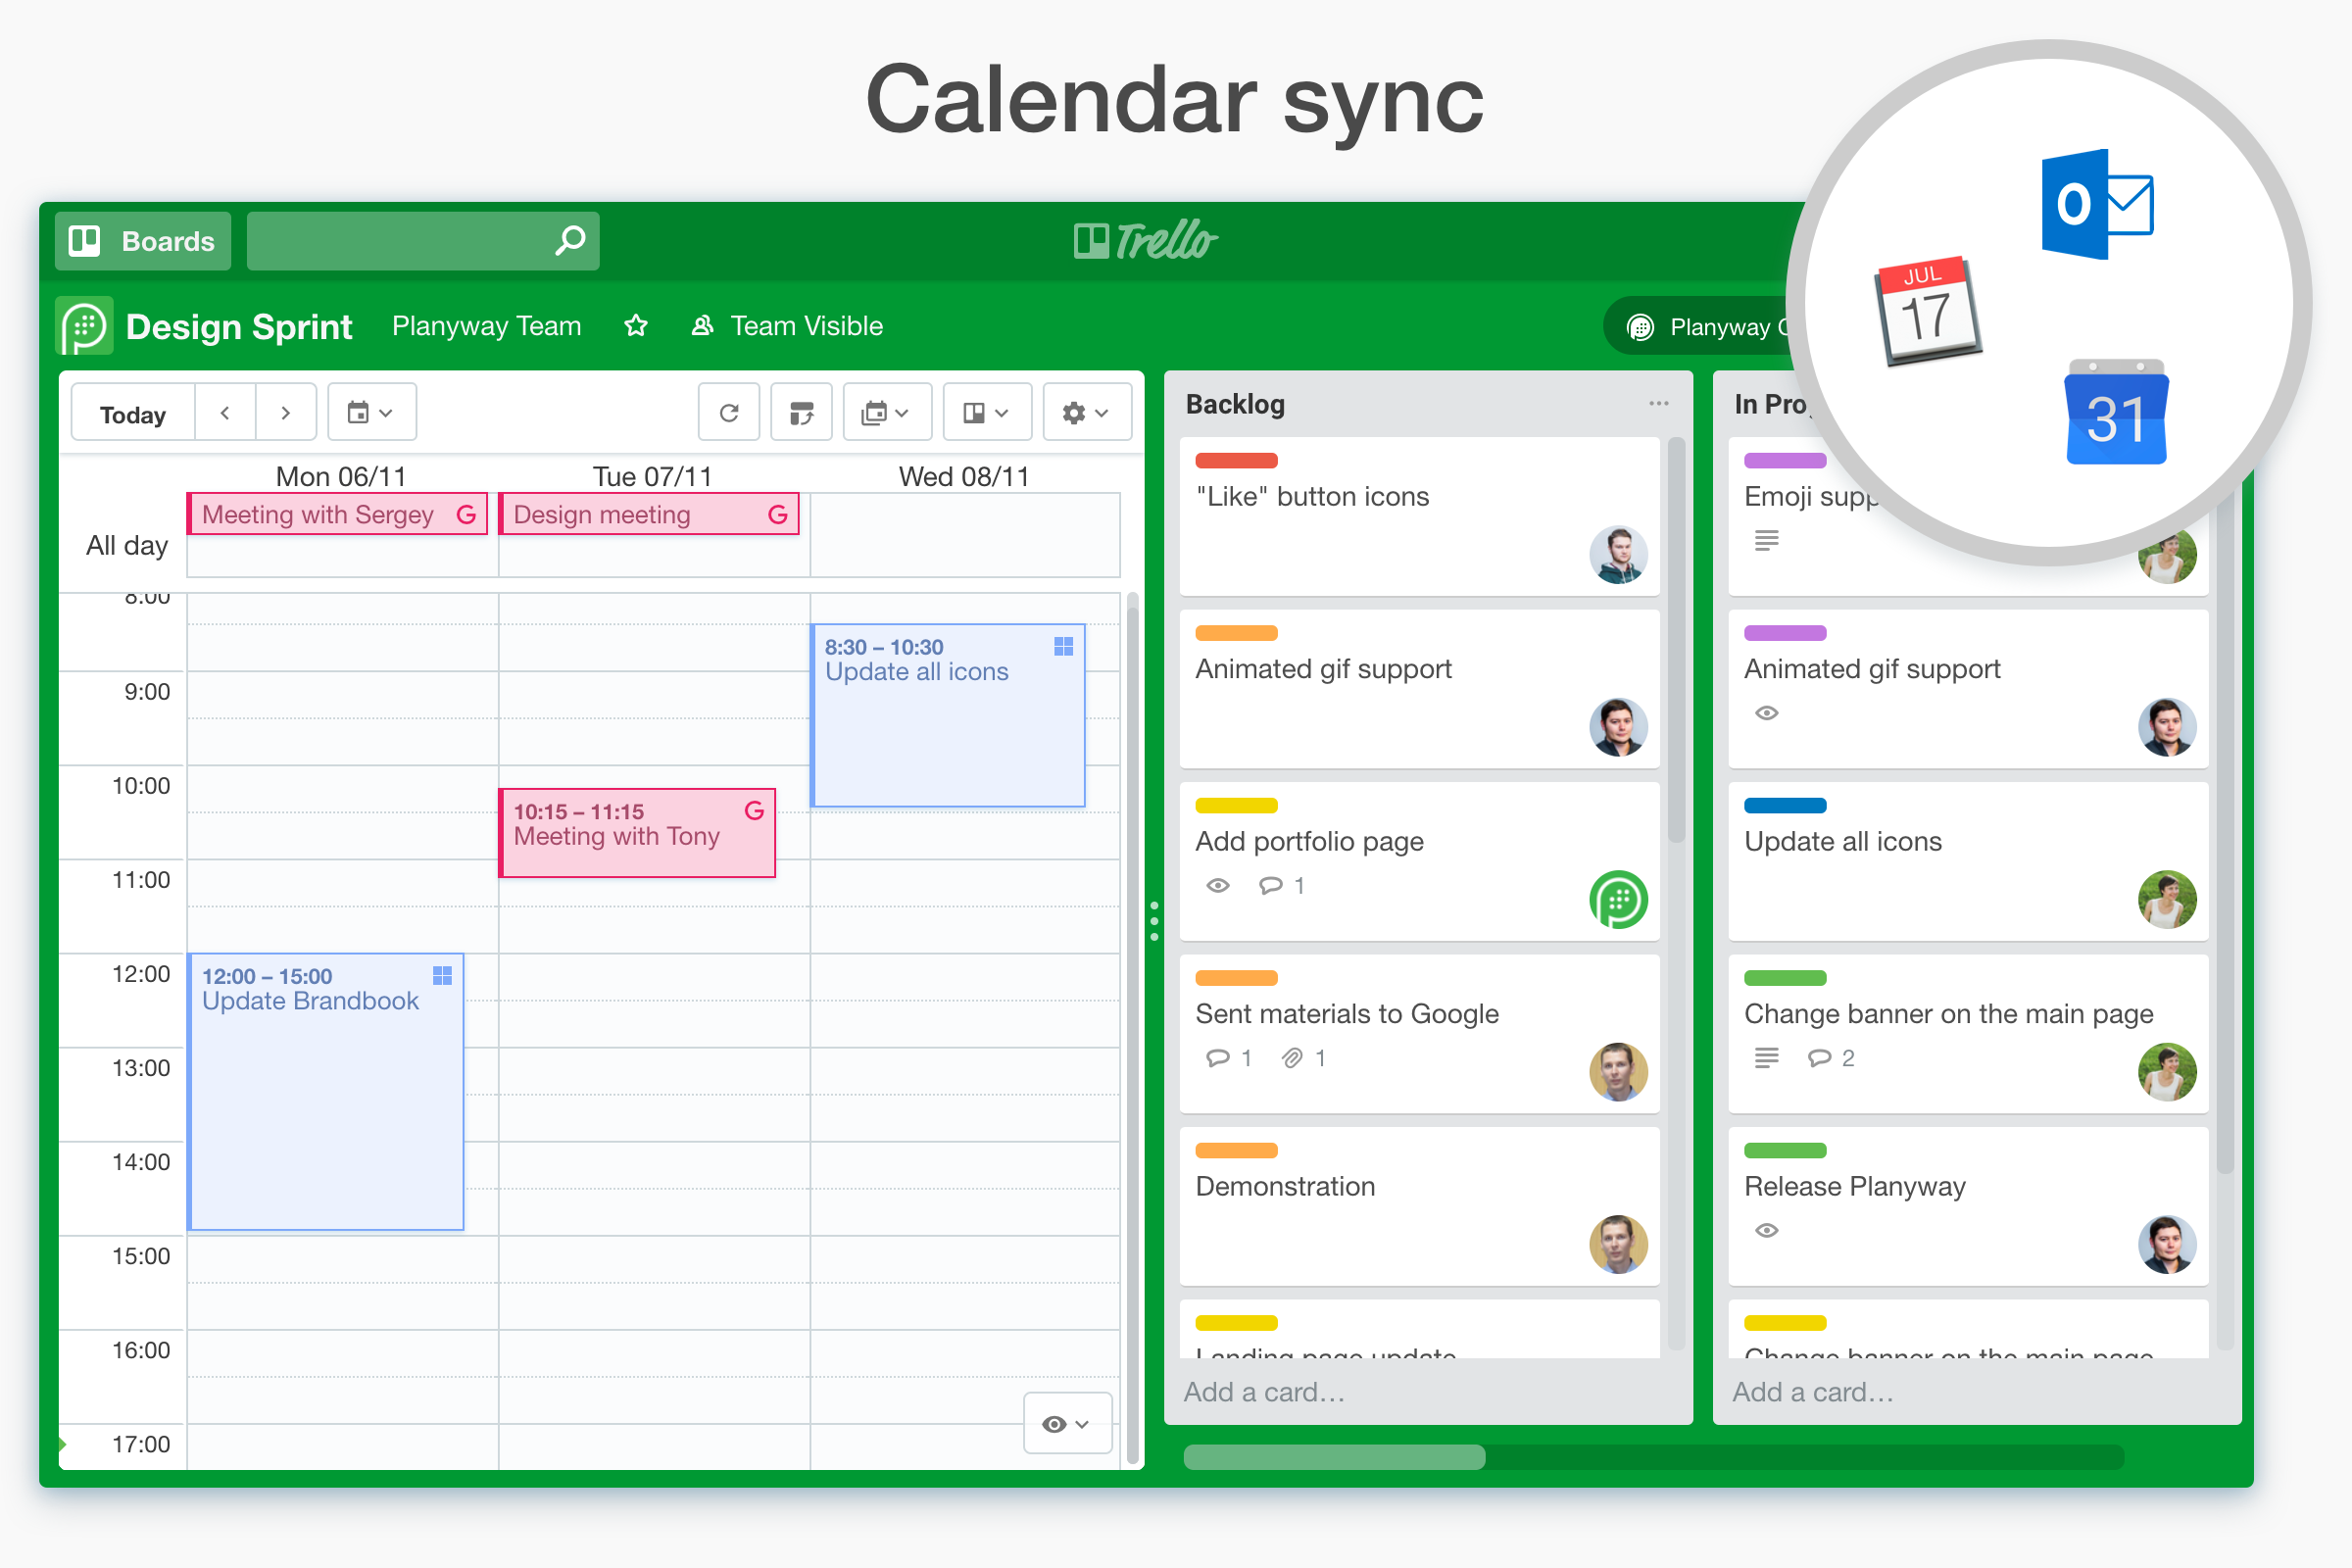 Planyway - Google Calendar inside your Trello